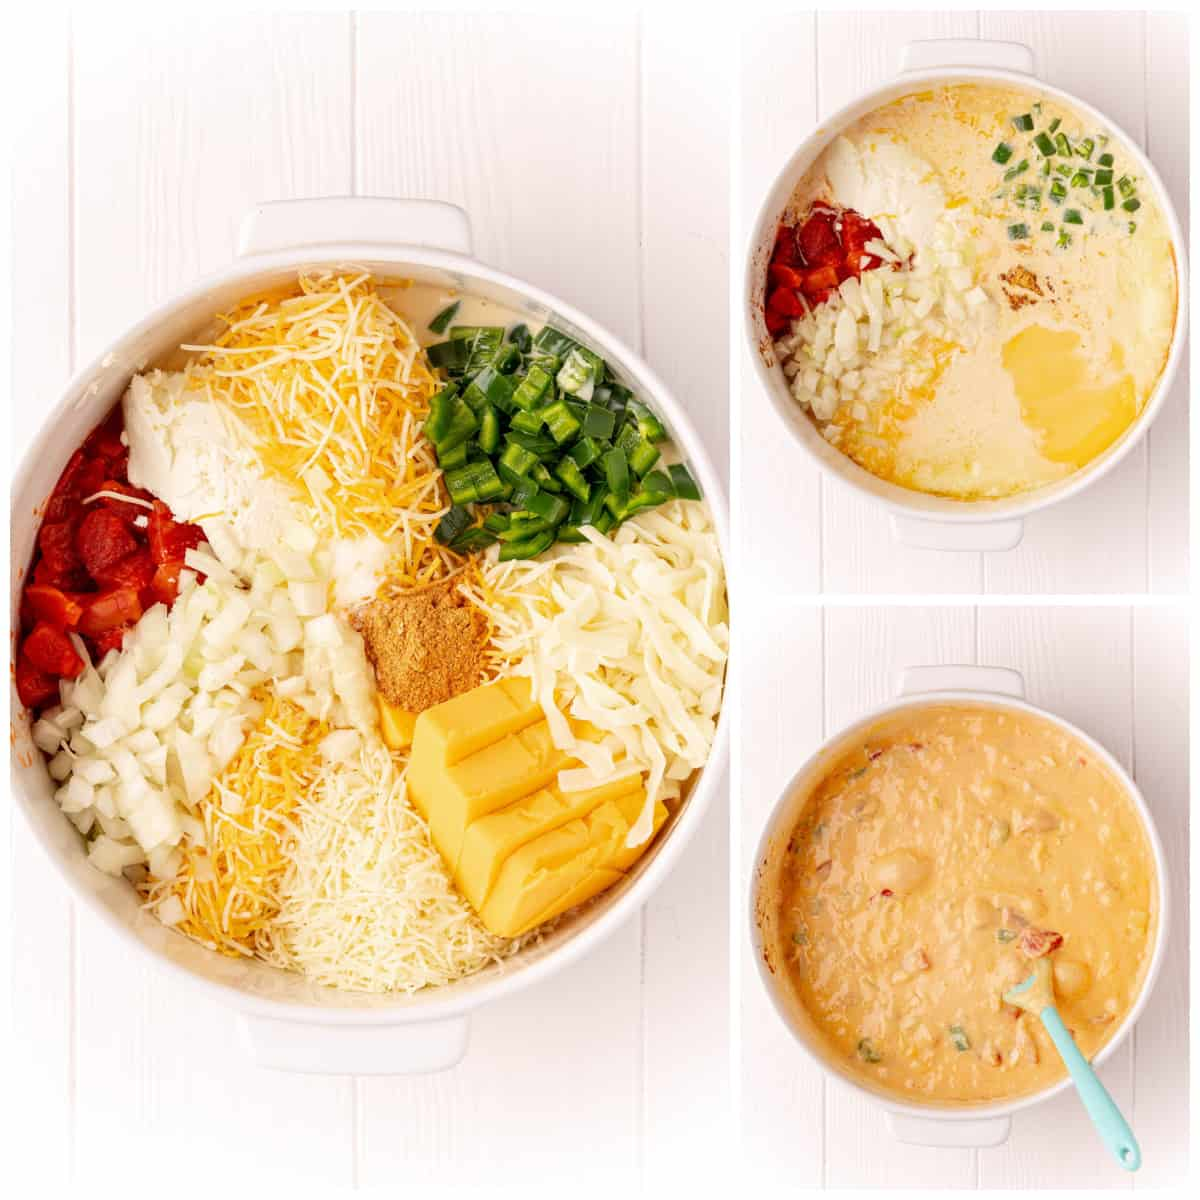 Step by step photos on how to make Baked Queso Dip